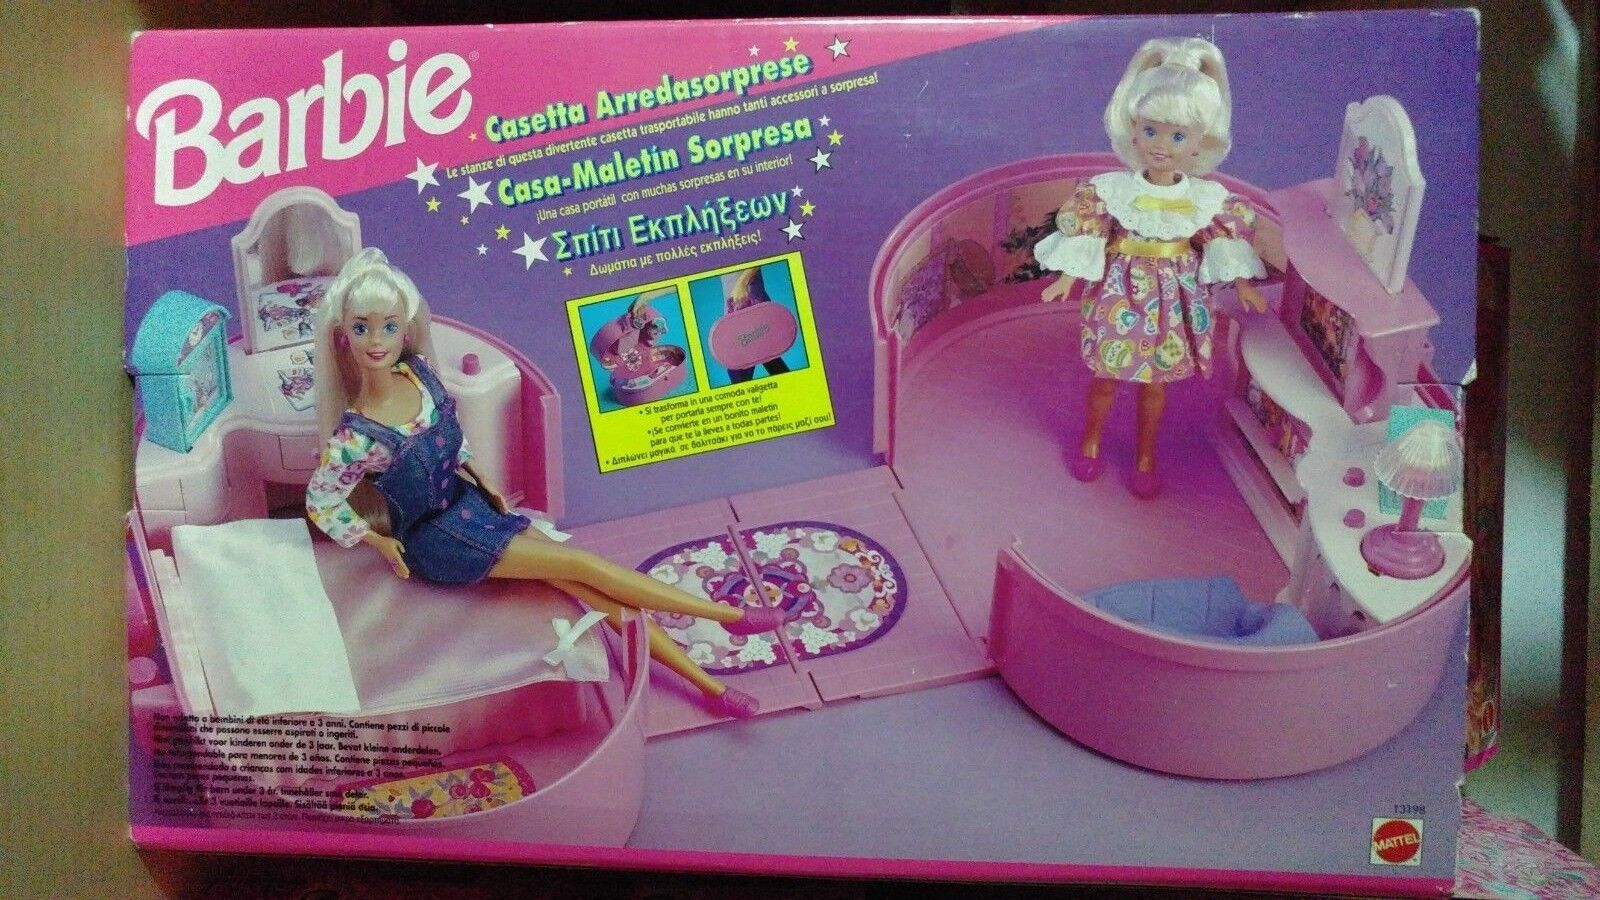 Barbie casetta arrossoasorprese 13198 pull pop play house coffret voyage NUOVO